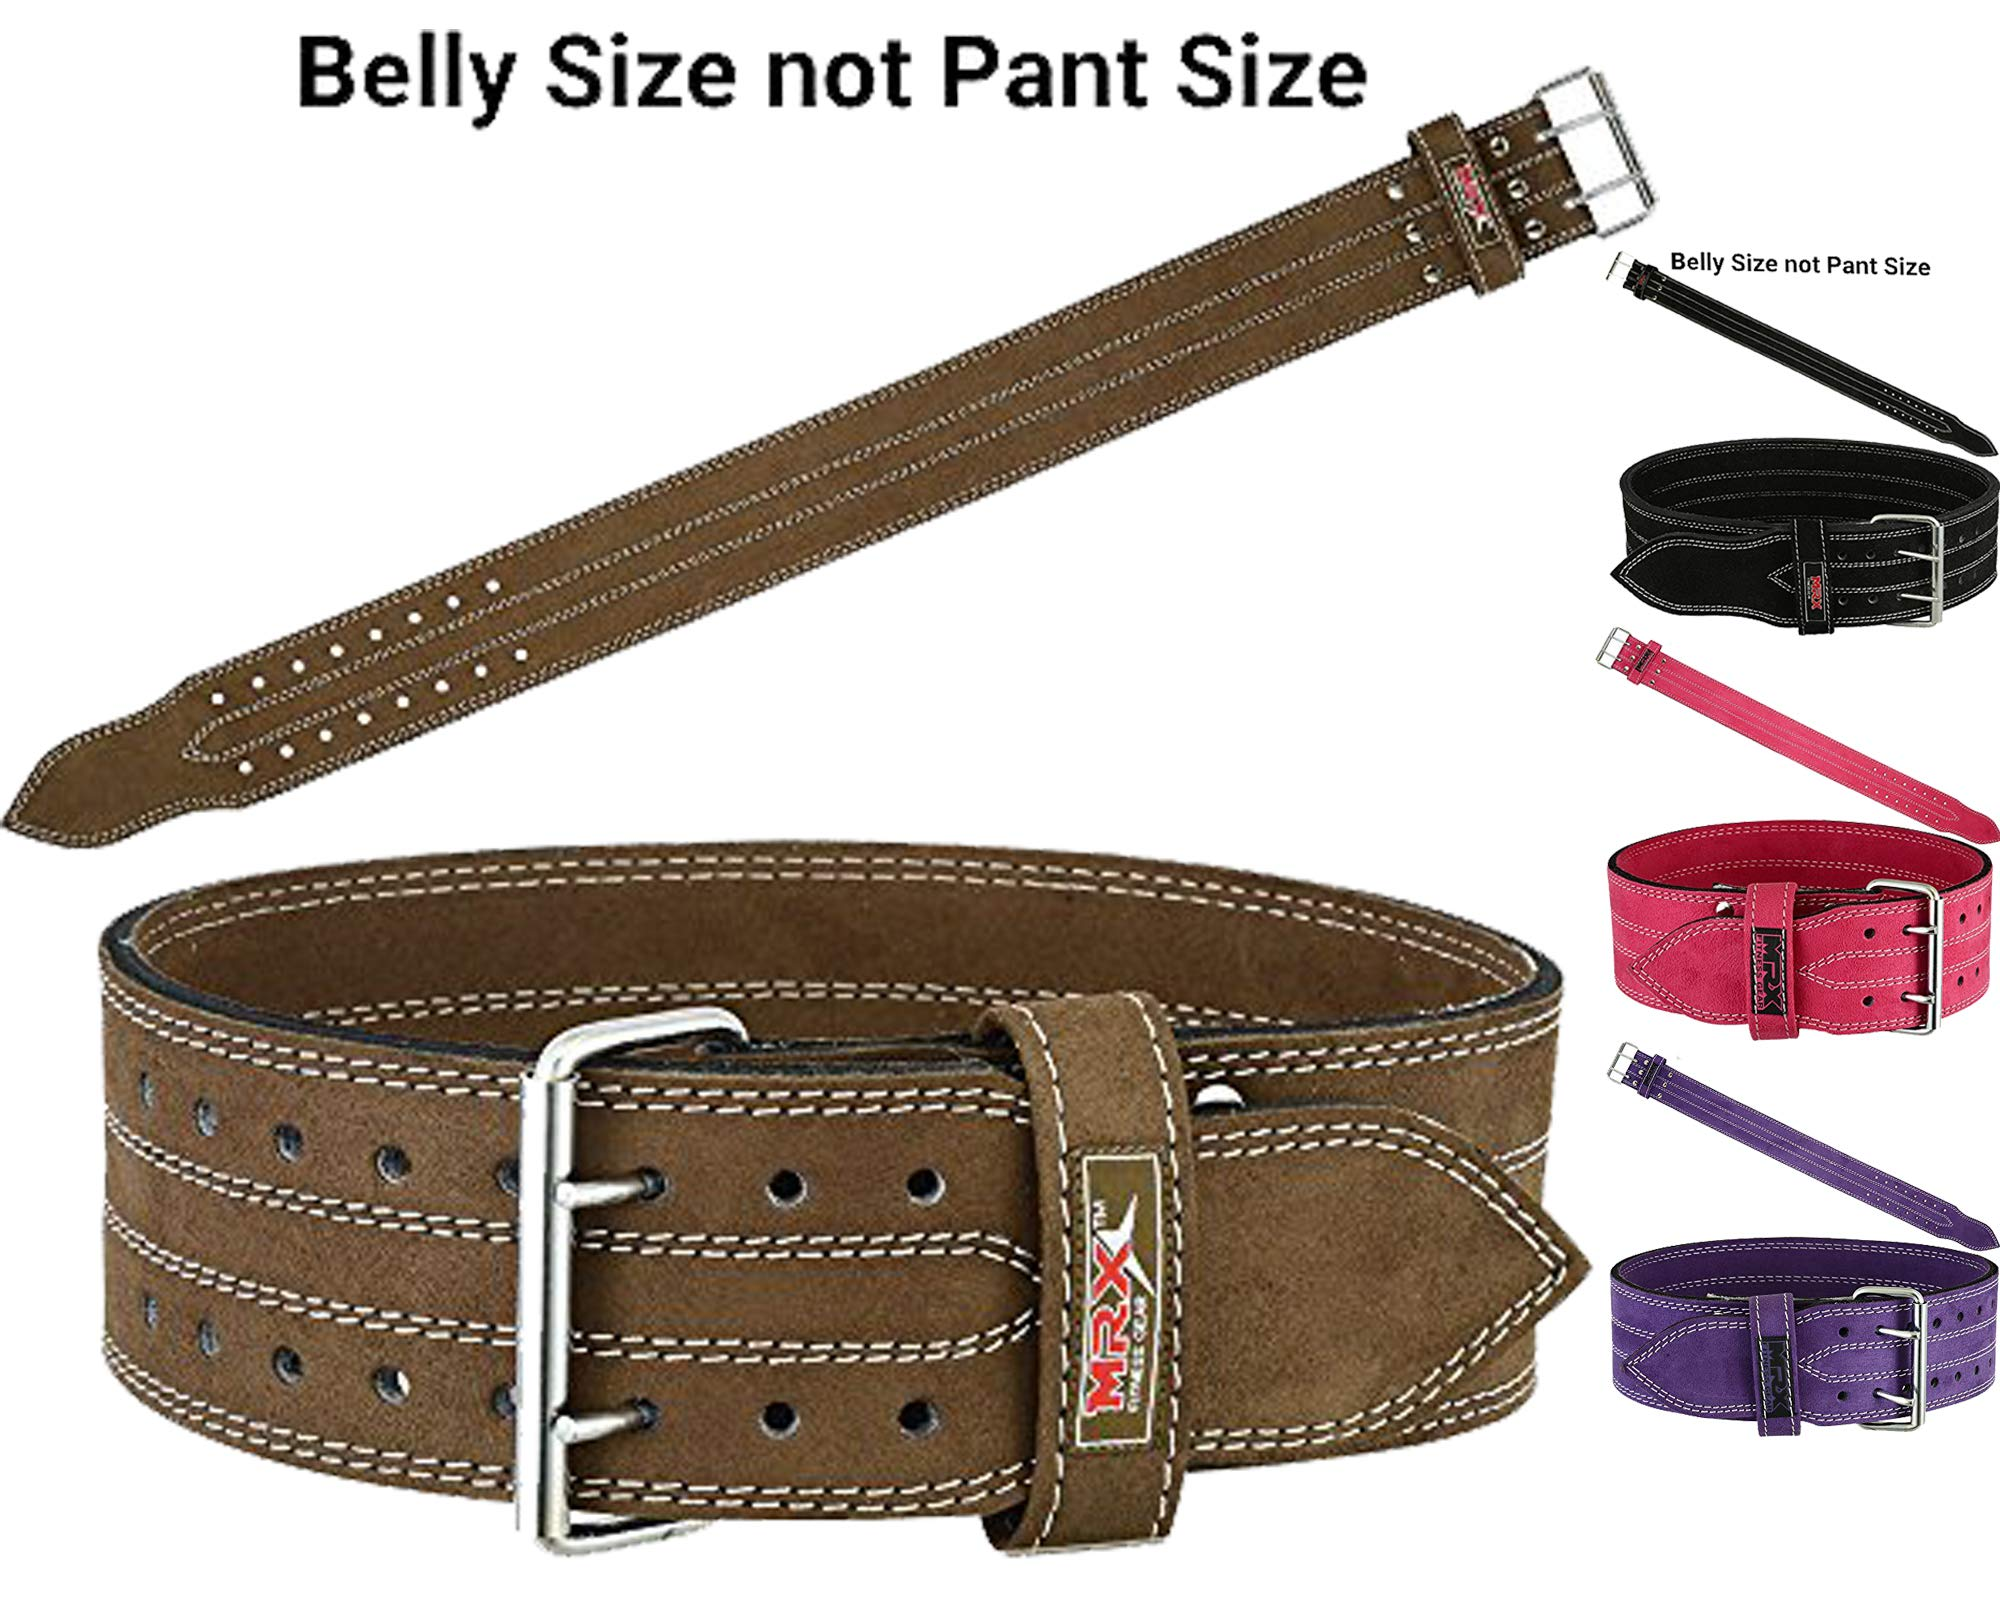 MRX Powerlifting Leather Belt 4'' Wide 10mm Thickness Training Fitness Back Support Bodybuilding Belts with Steel 2 Prong Buckle Brown (XXL)